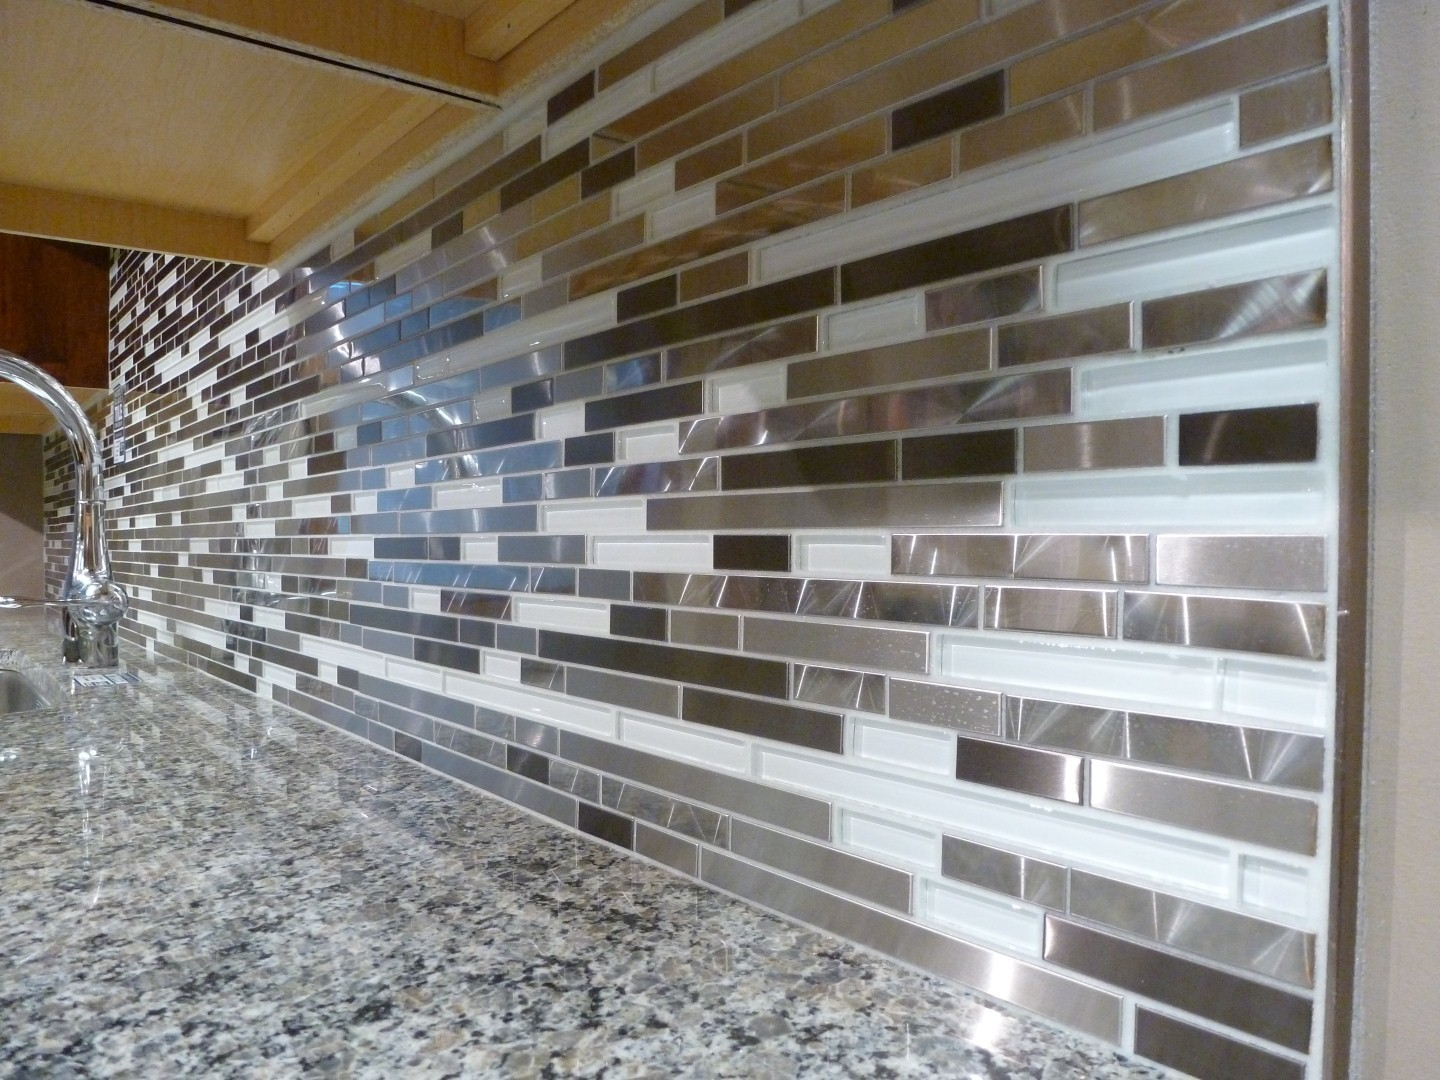 glass tile mosaic backsplash